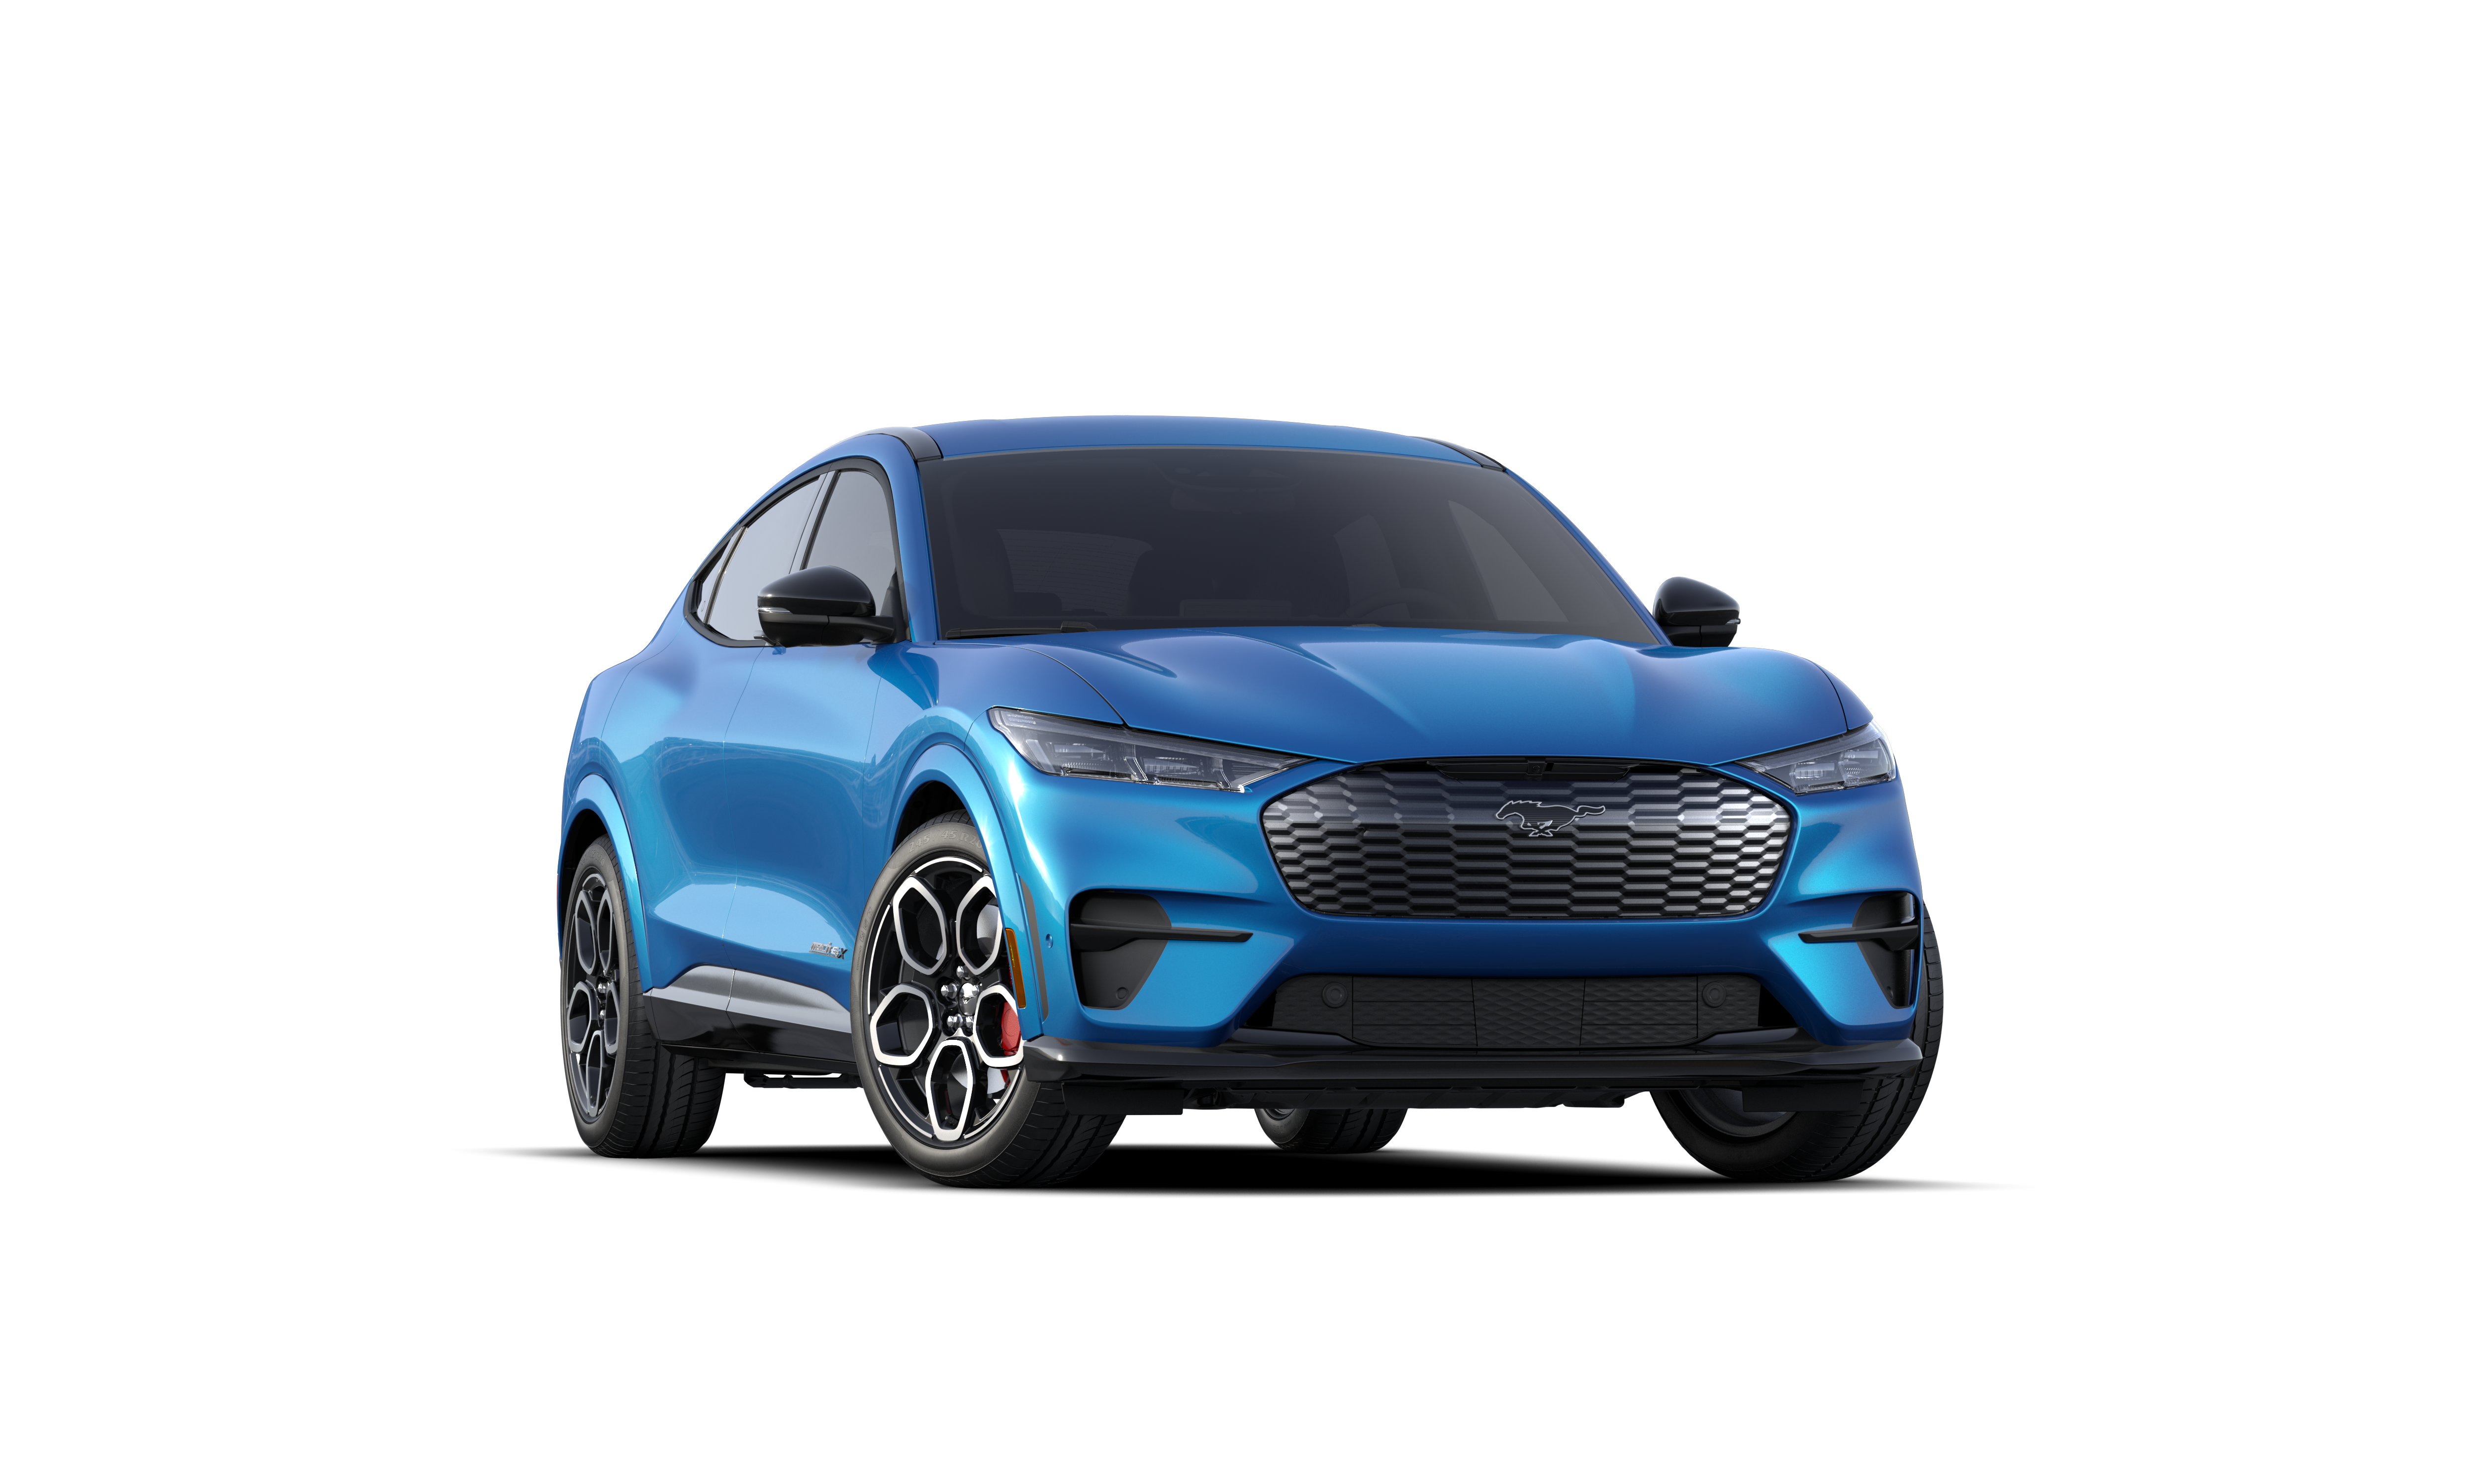 2021 Ford Mustang Mach E Lehighton Ford Blog